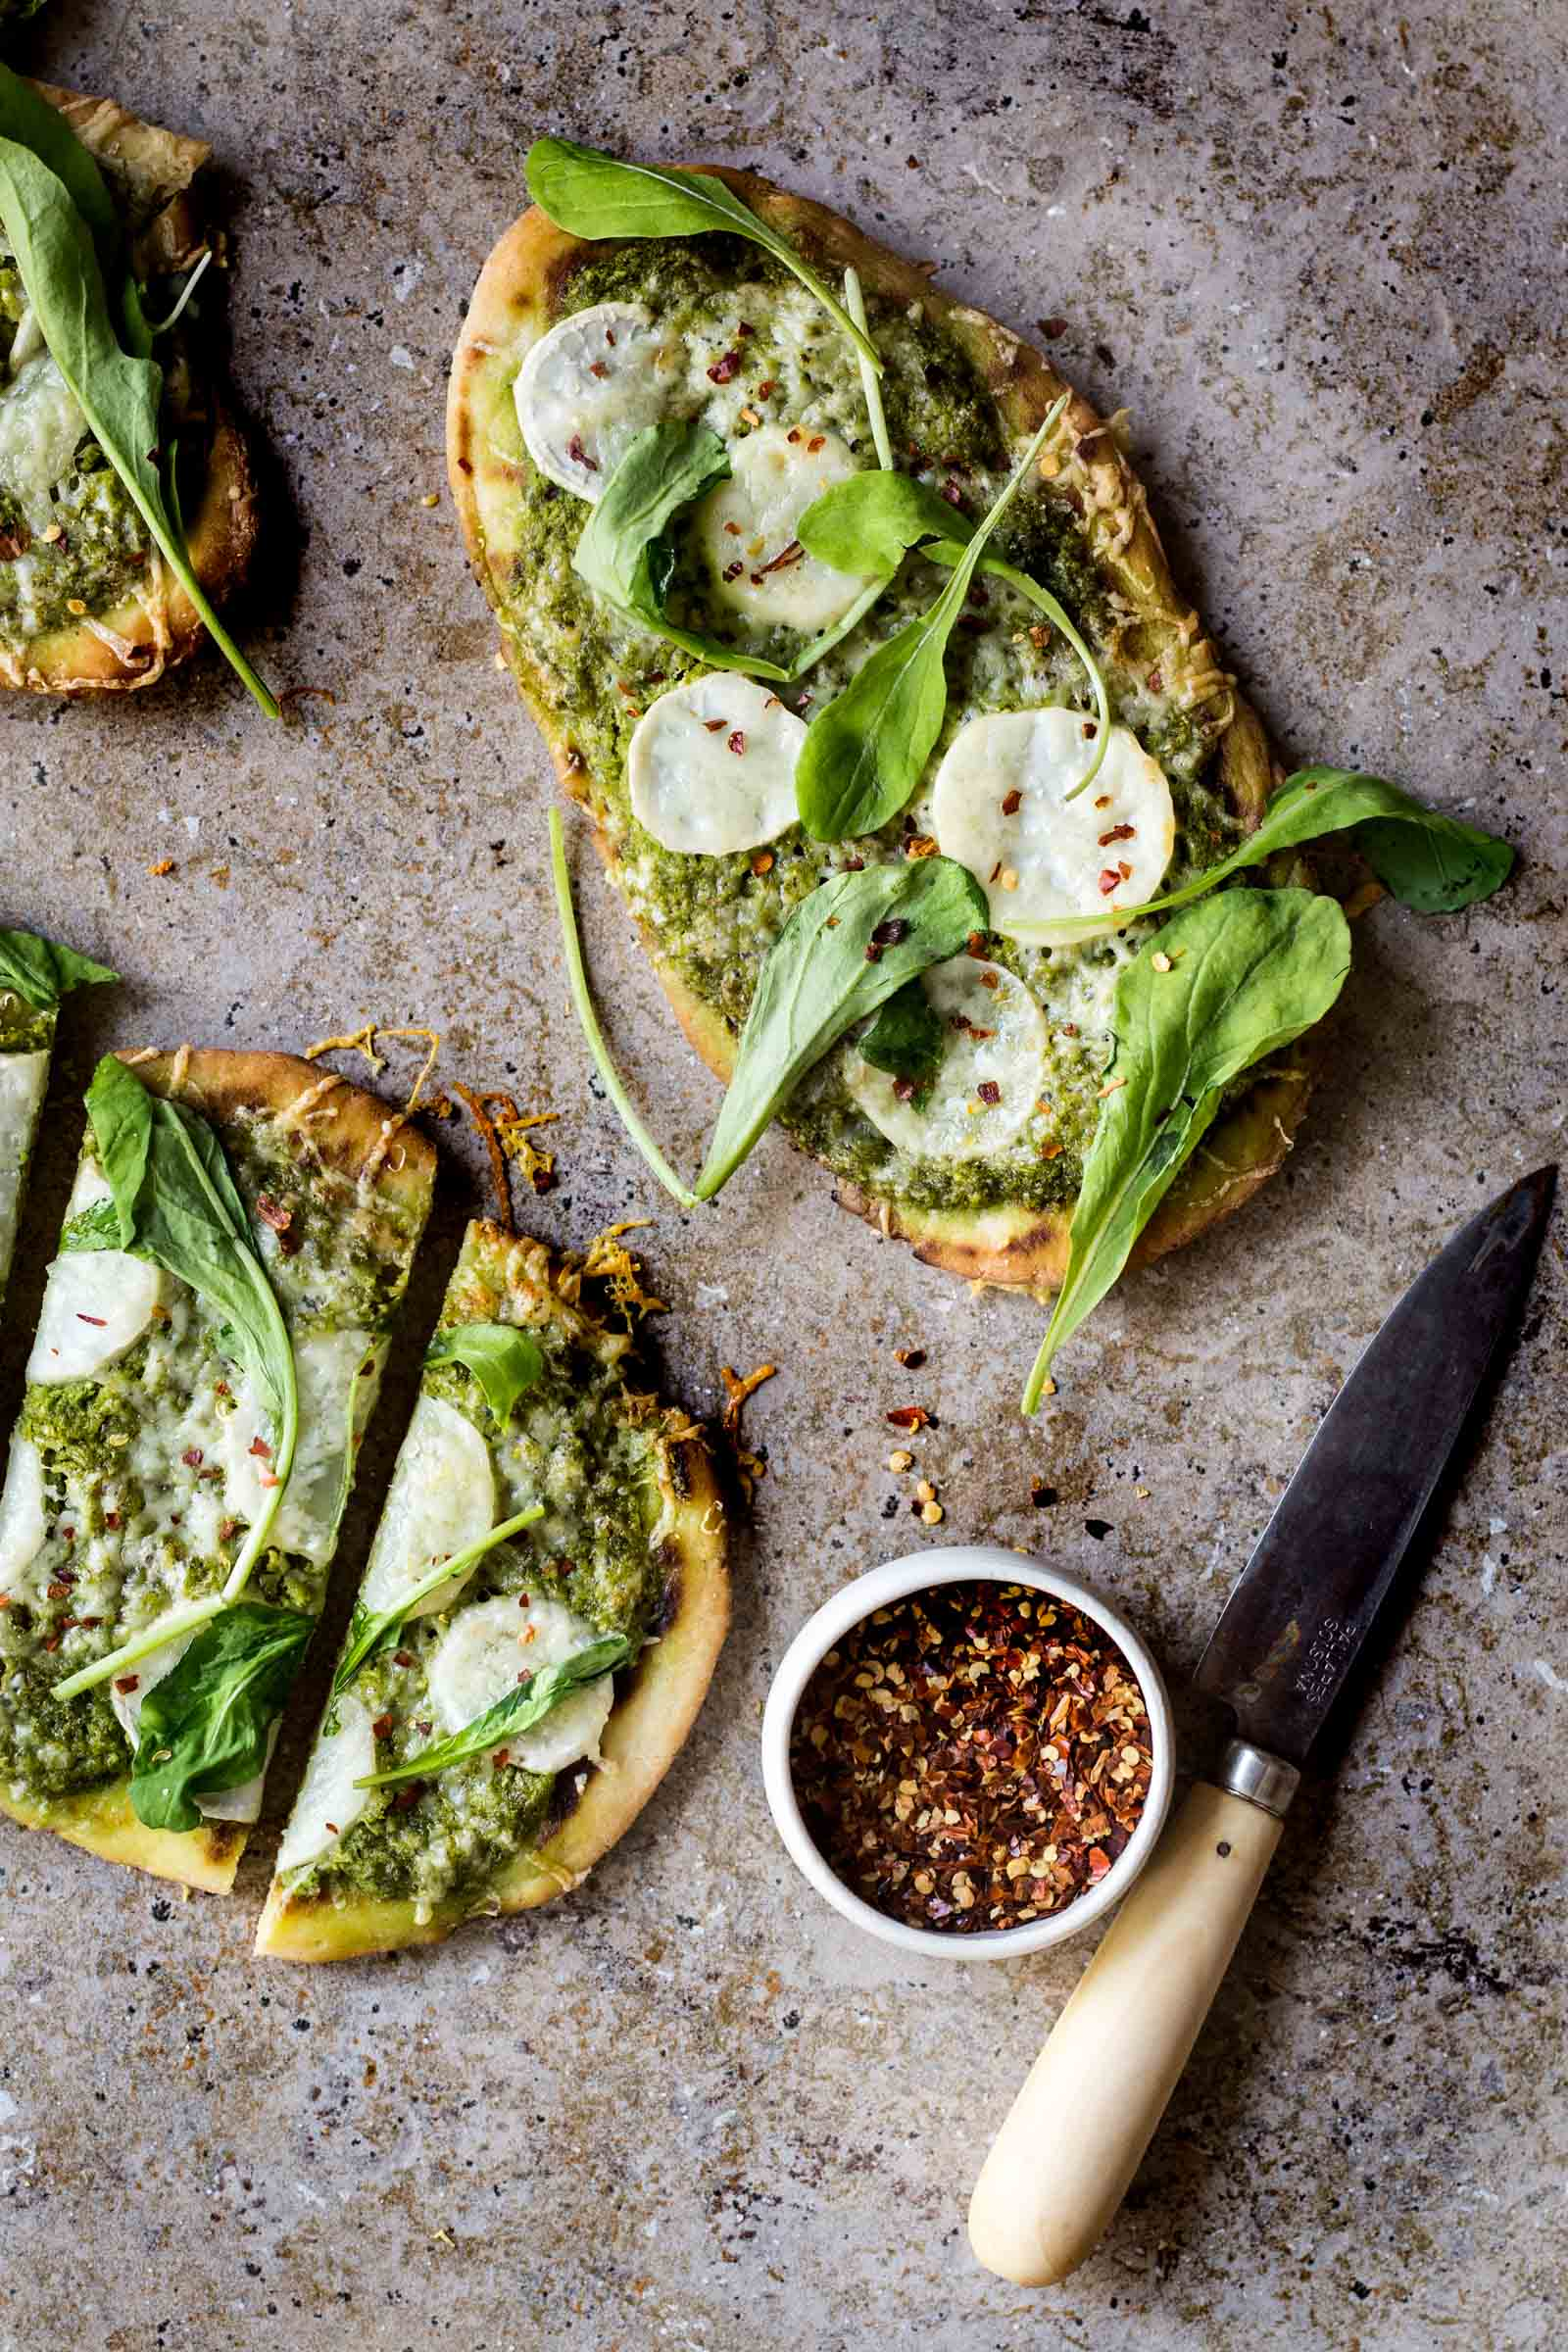 Turnip & Turnip Greens Pesto Pizza